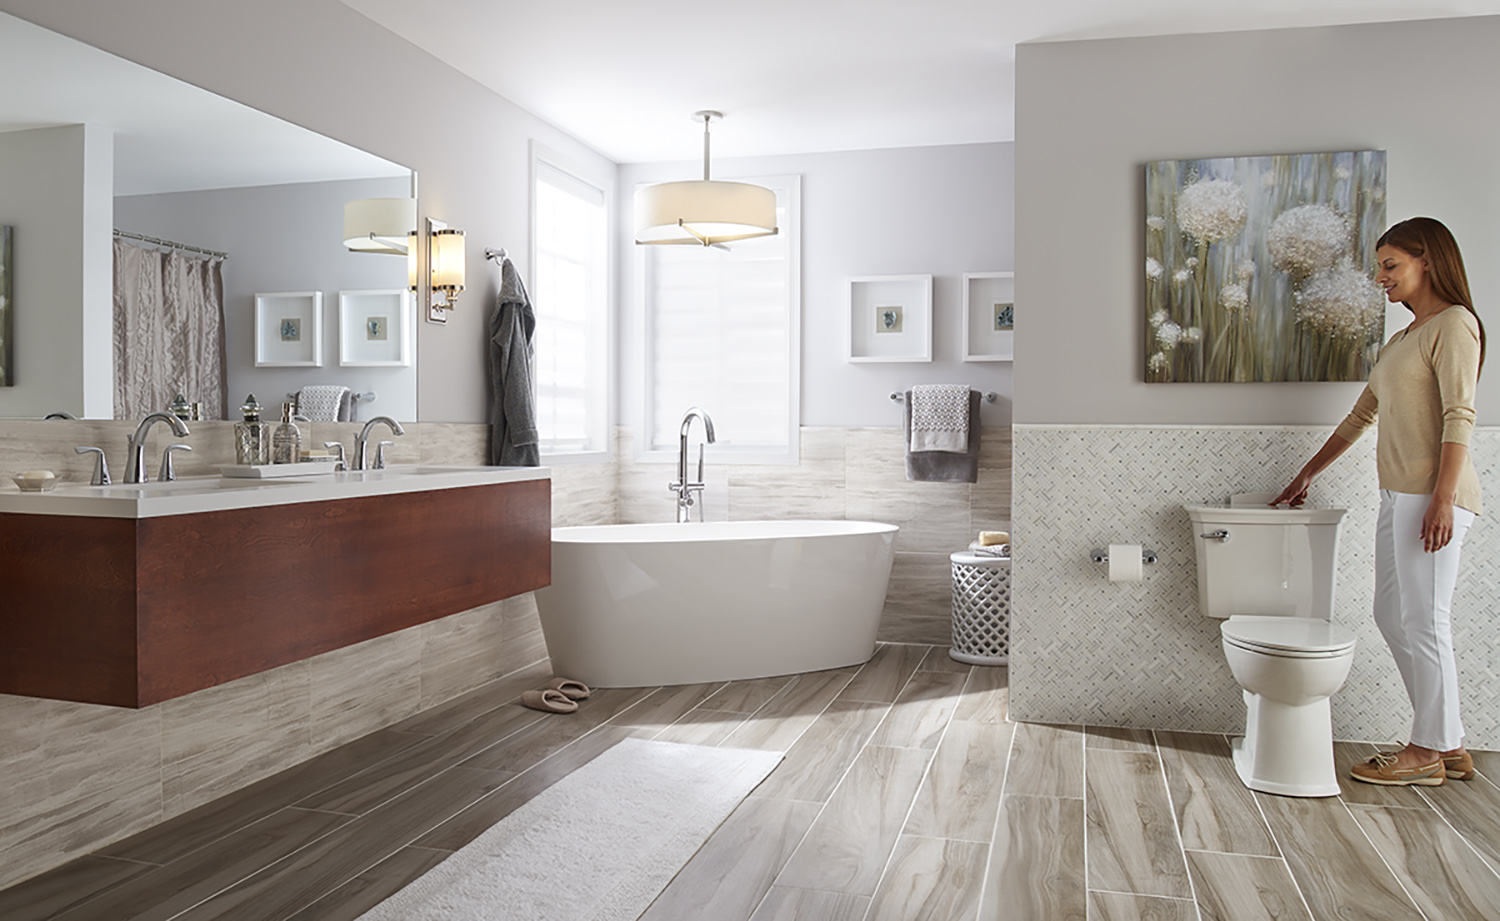 Self Cleaning Toilets For Master Suites